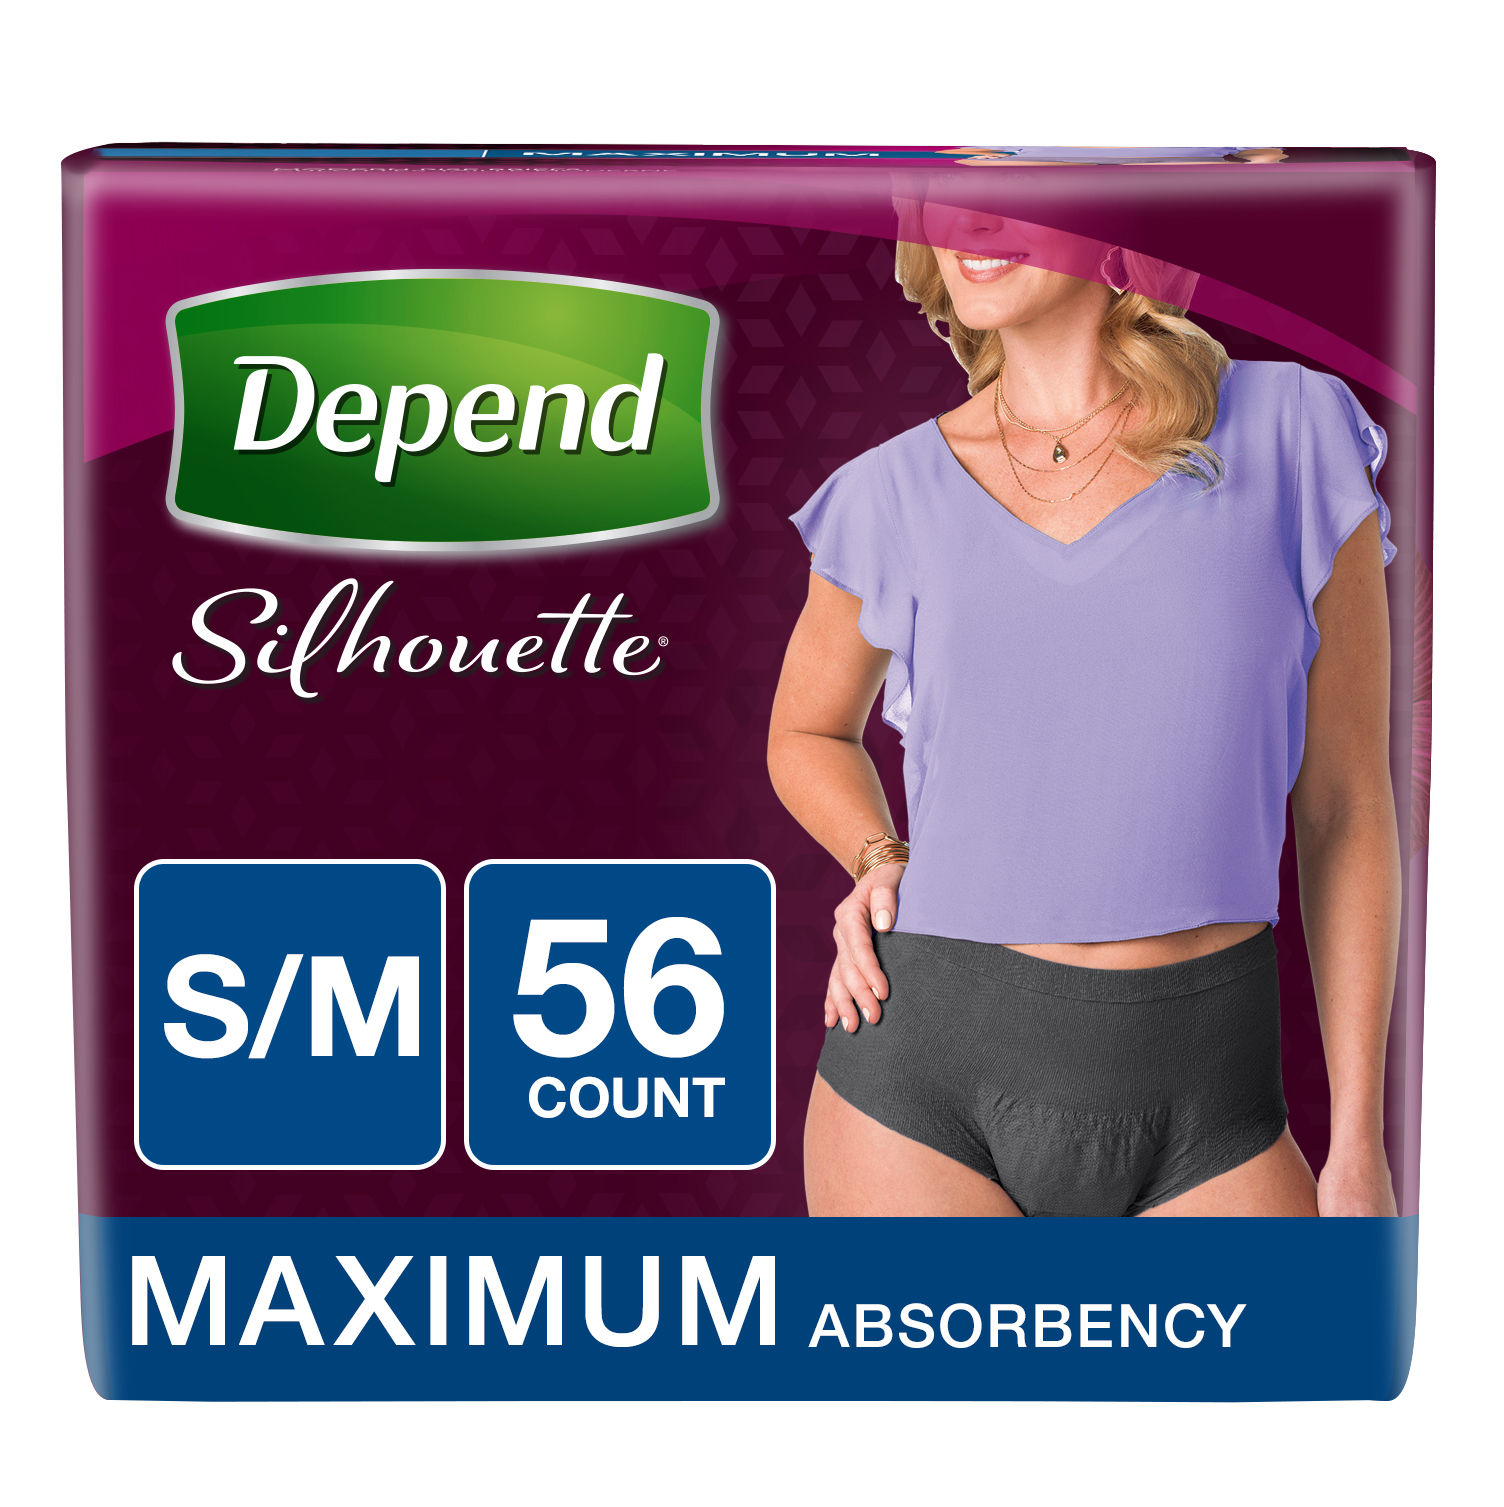 Depend Silhouette for Women Maximum Absorbency Briefs S/M, 56 count